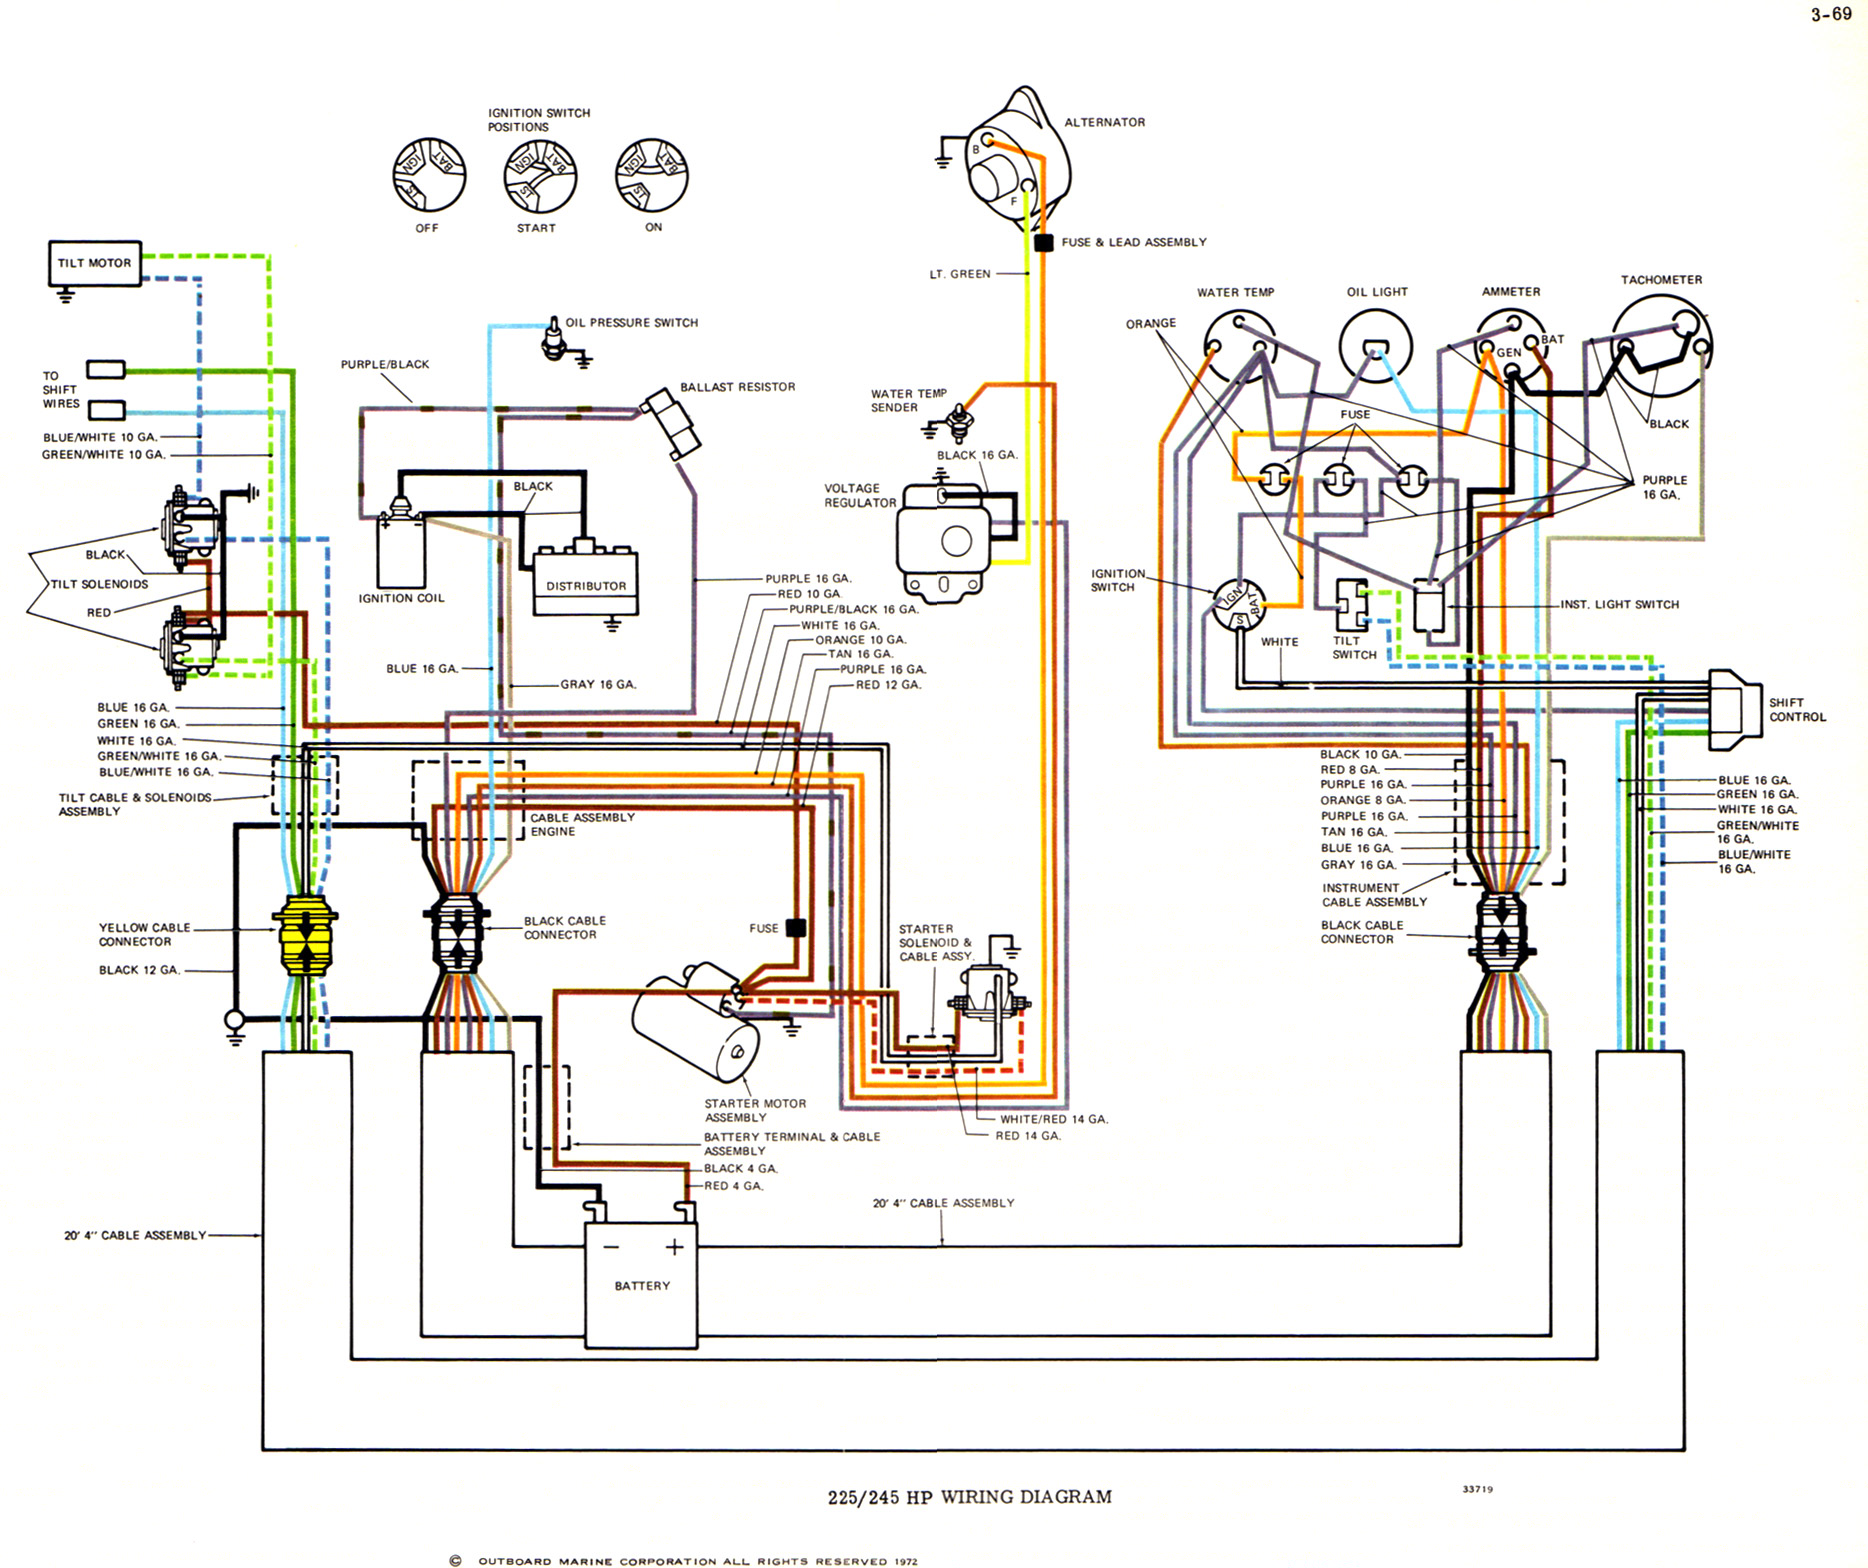 omc throttle control box wiring diagram wiring library